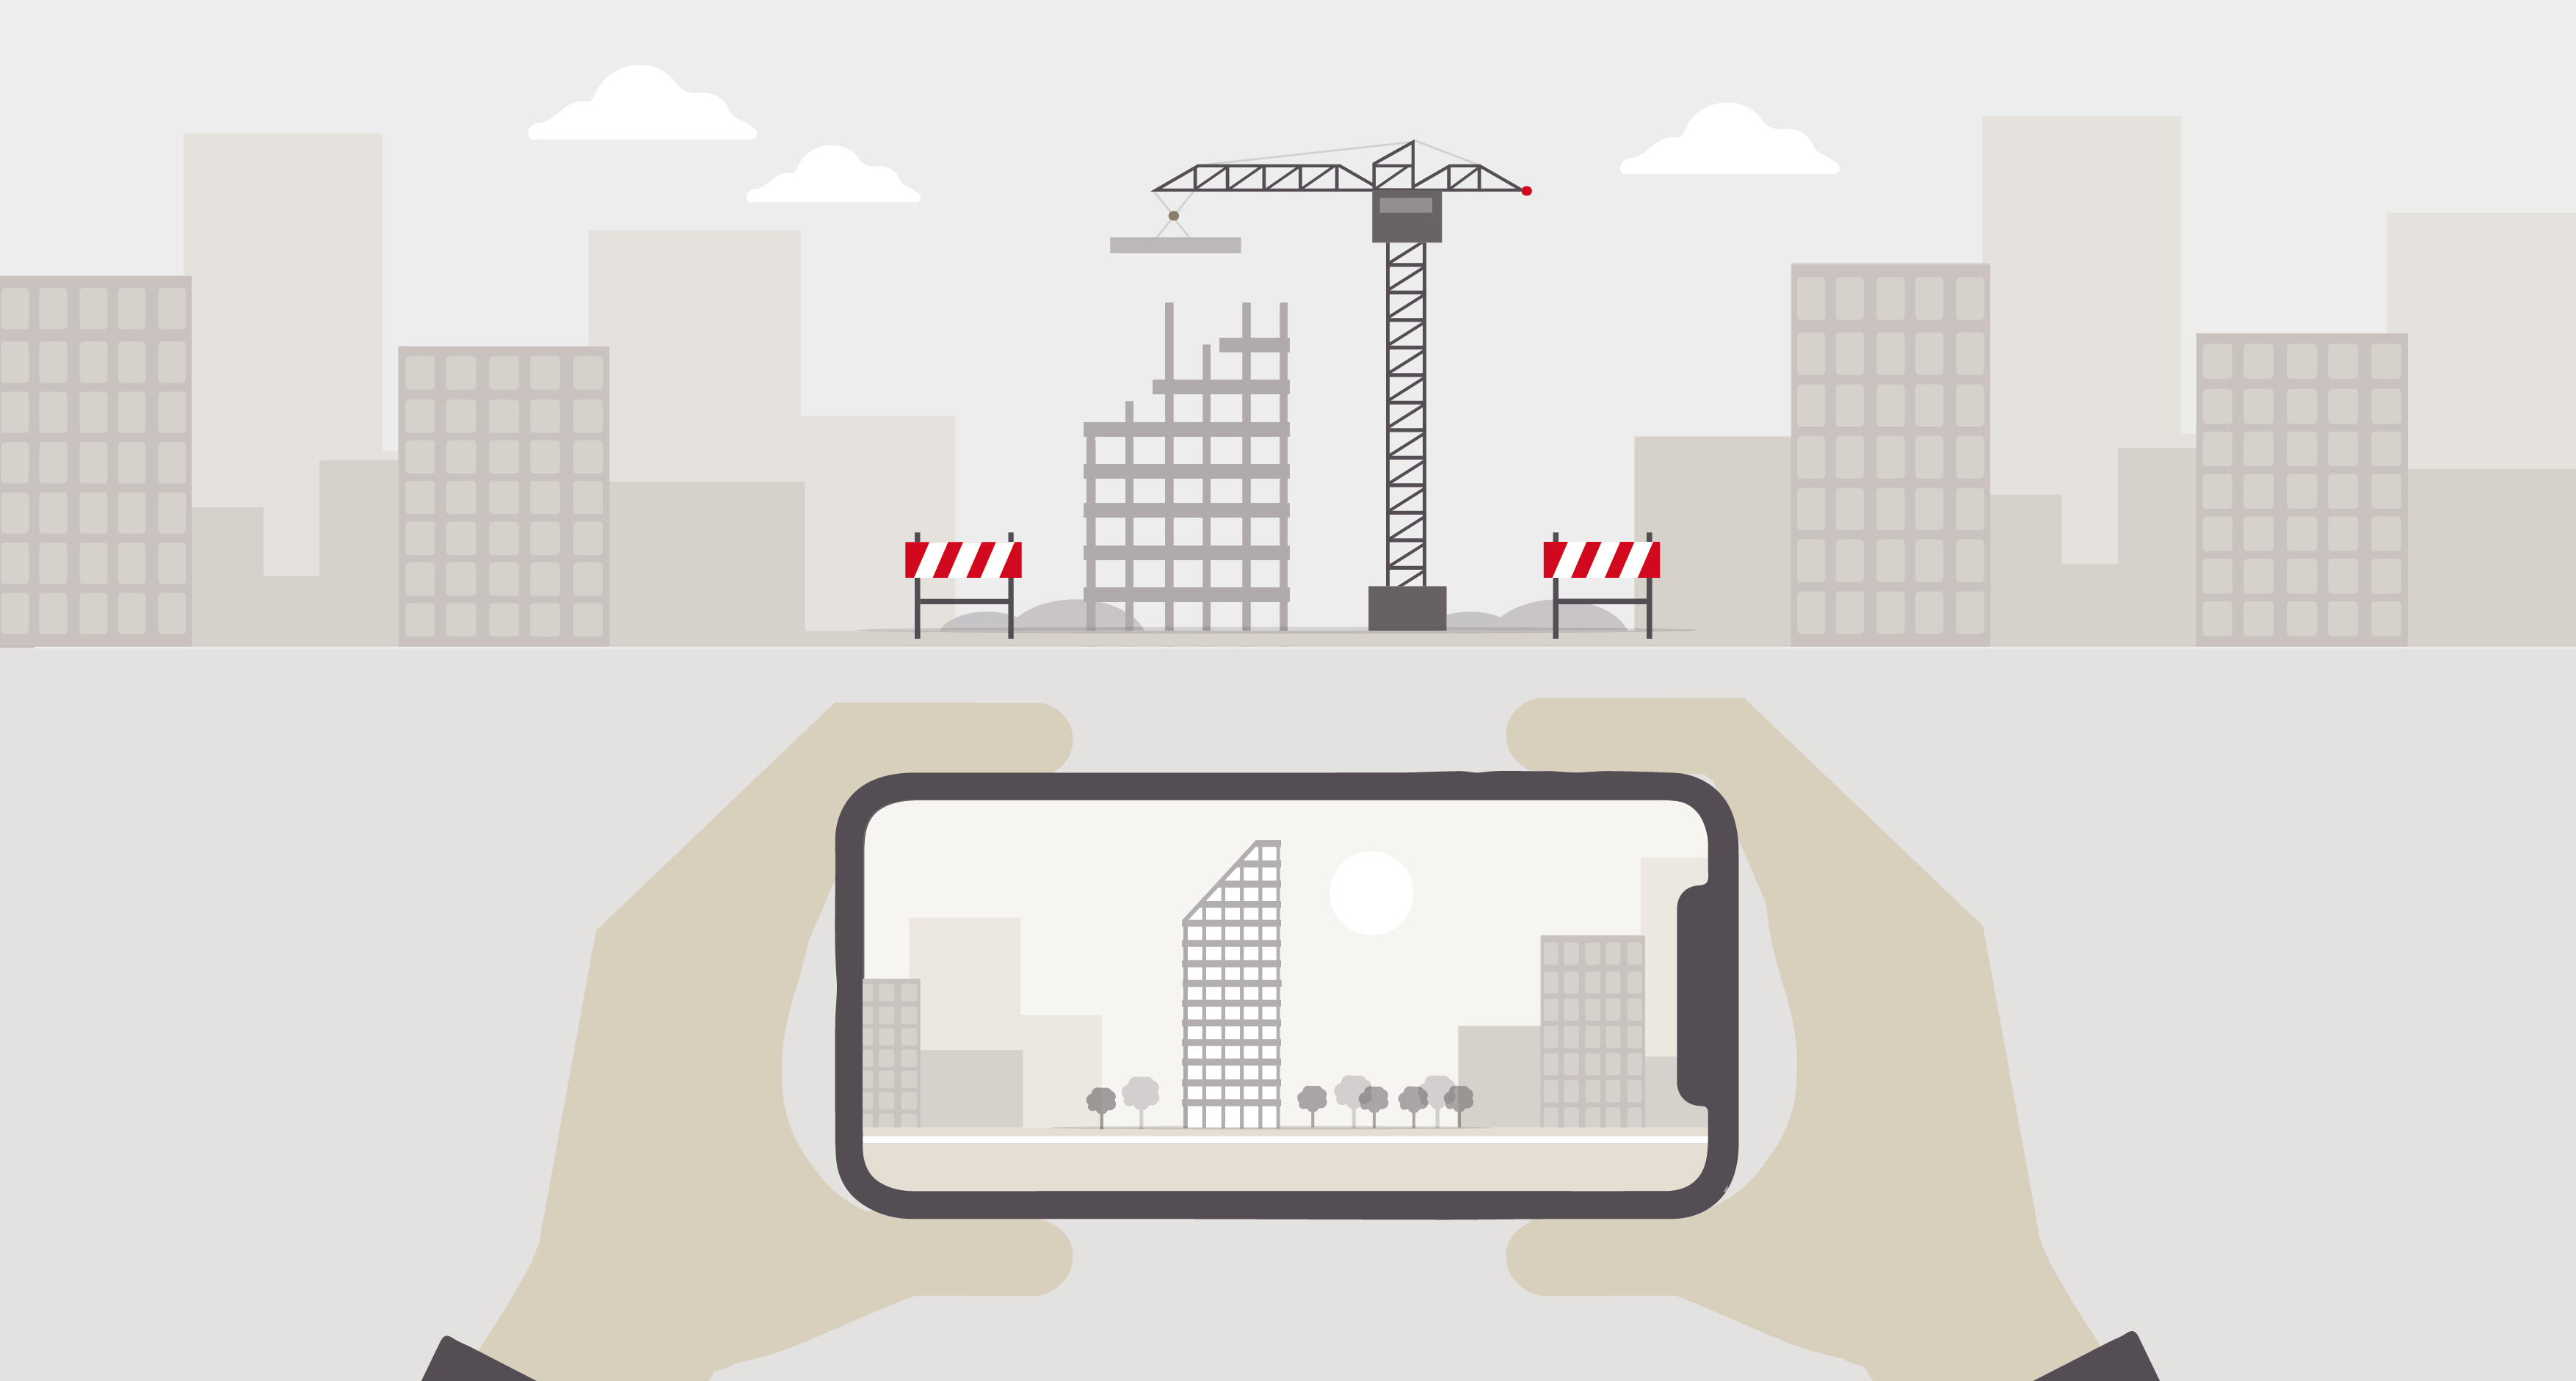 5 Construction Industry Trends For 2019 and Beyond TechNative